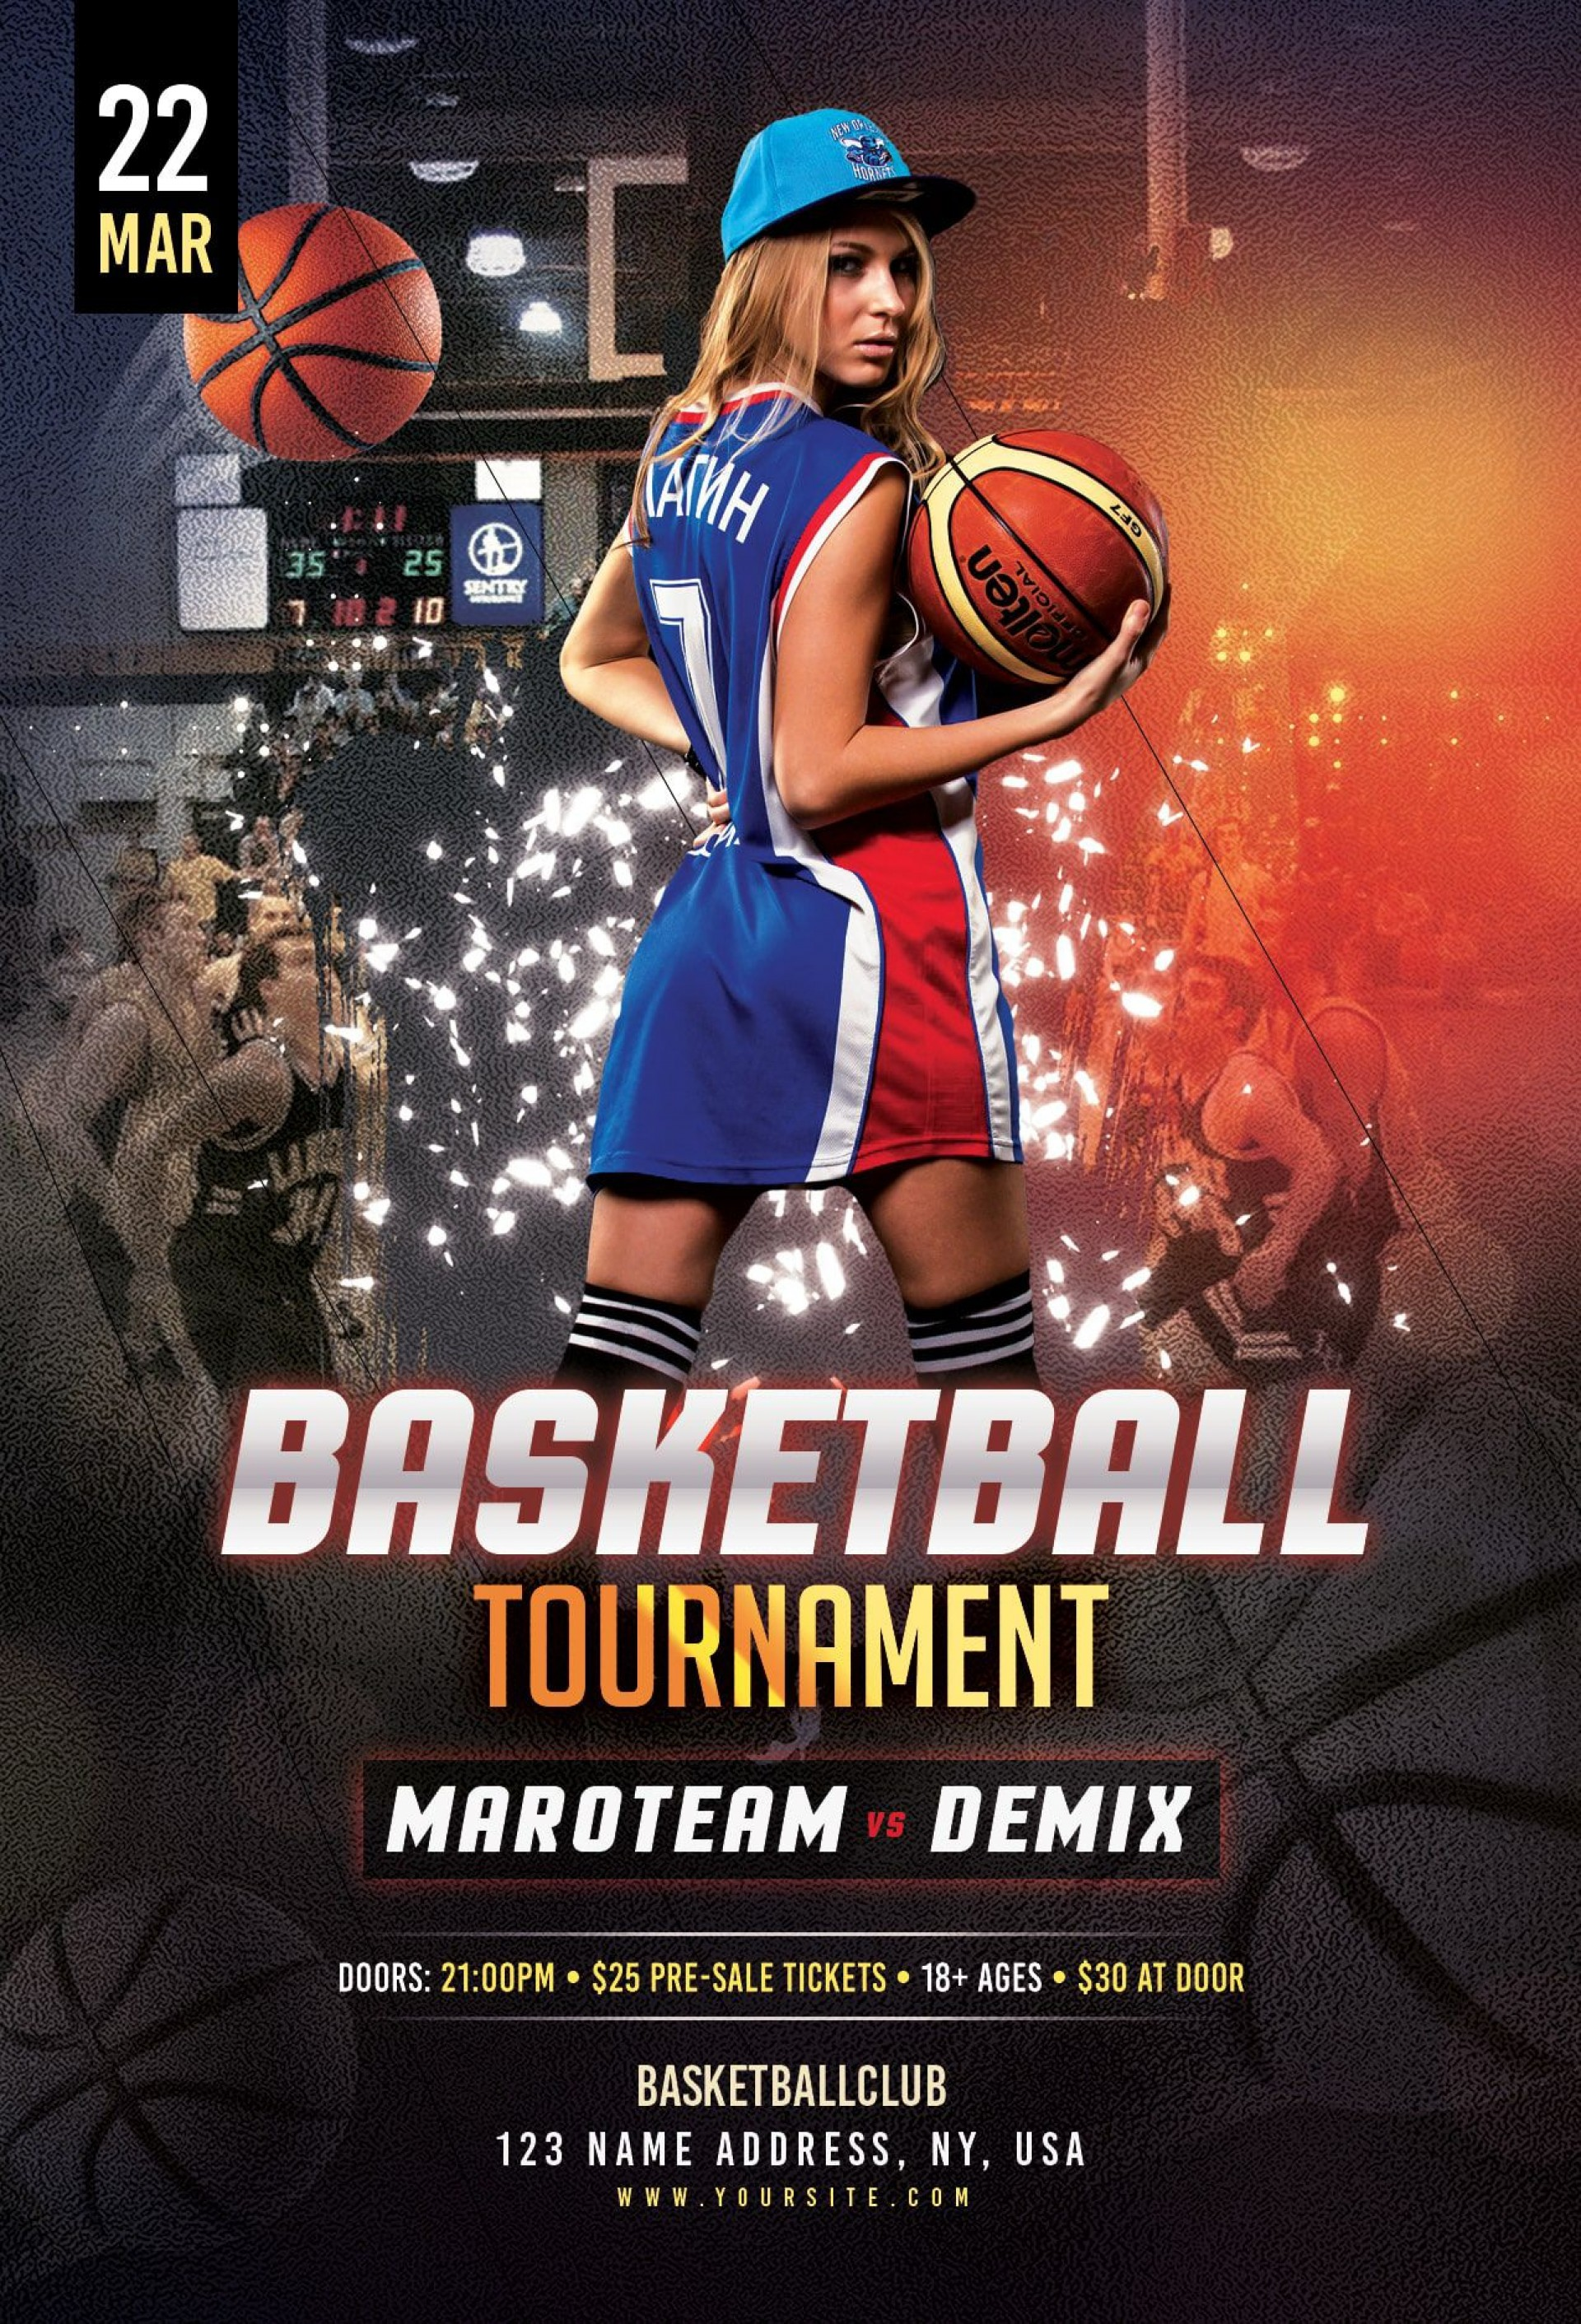 000 Unbelievable Basketball Tournament Flyer Template Sample  3 On Free1920